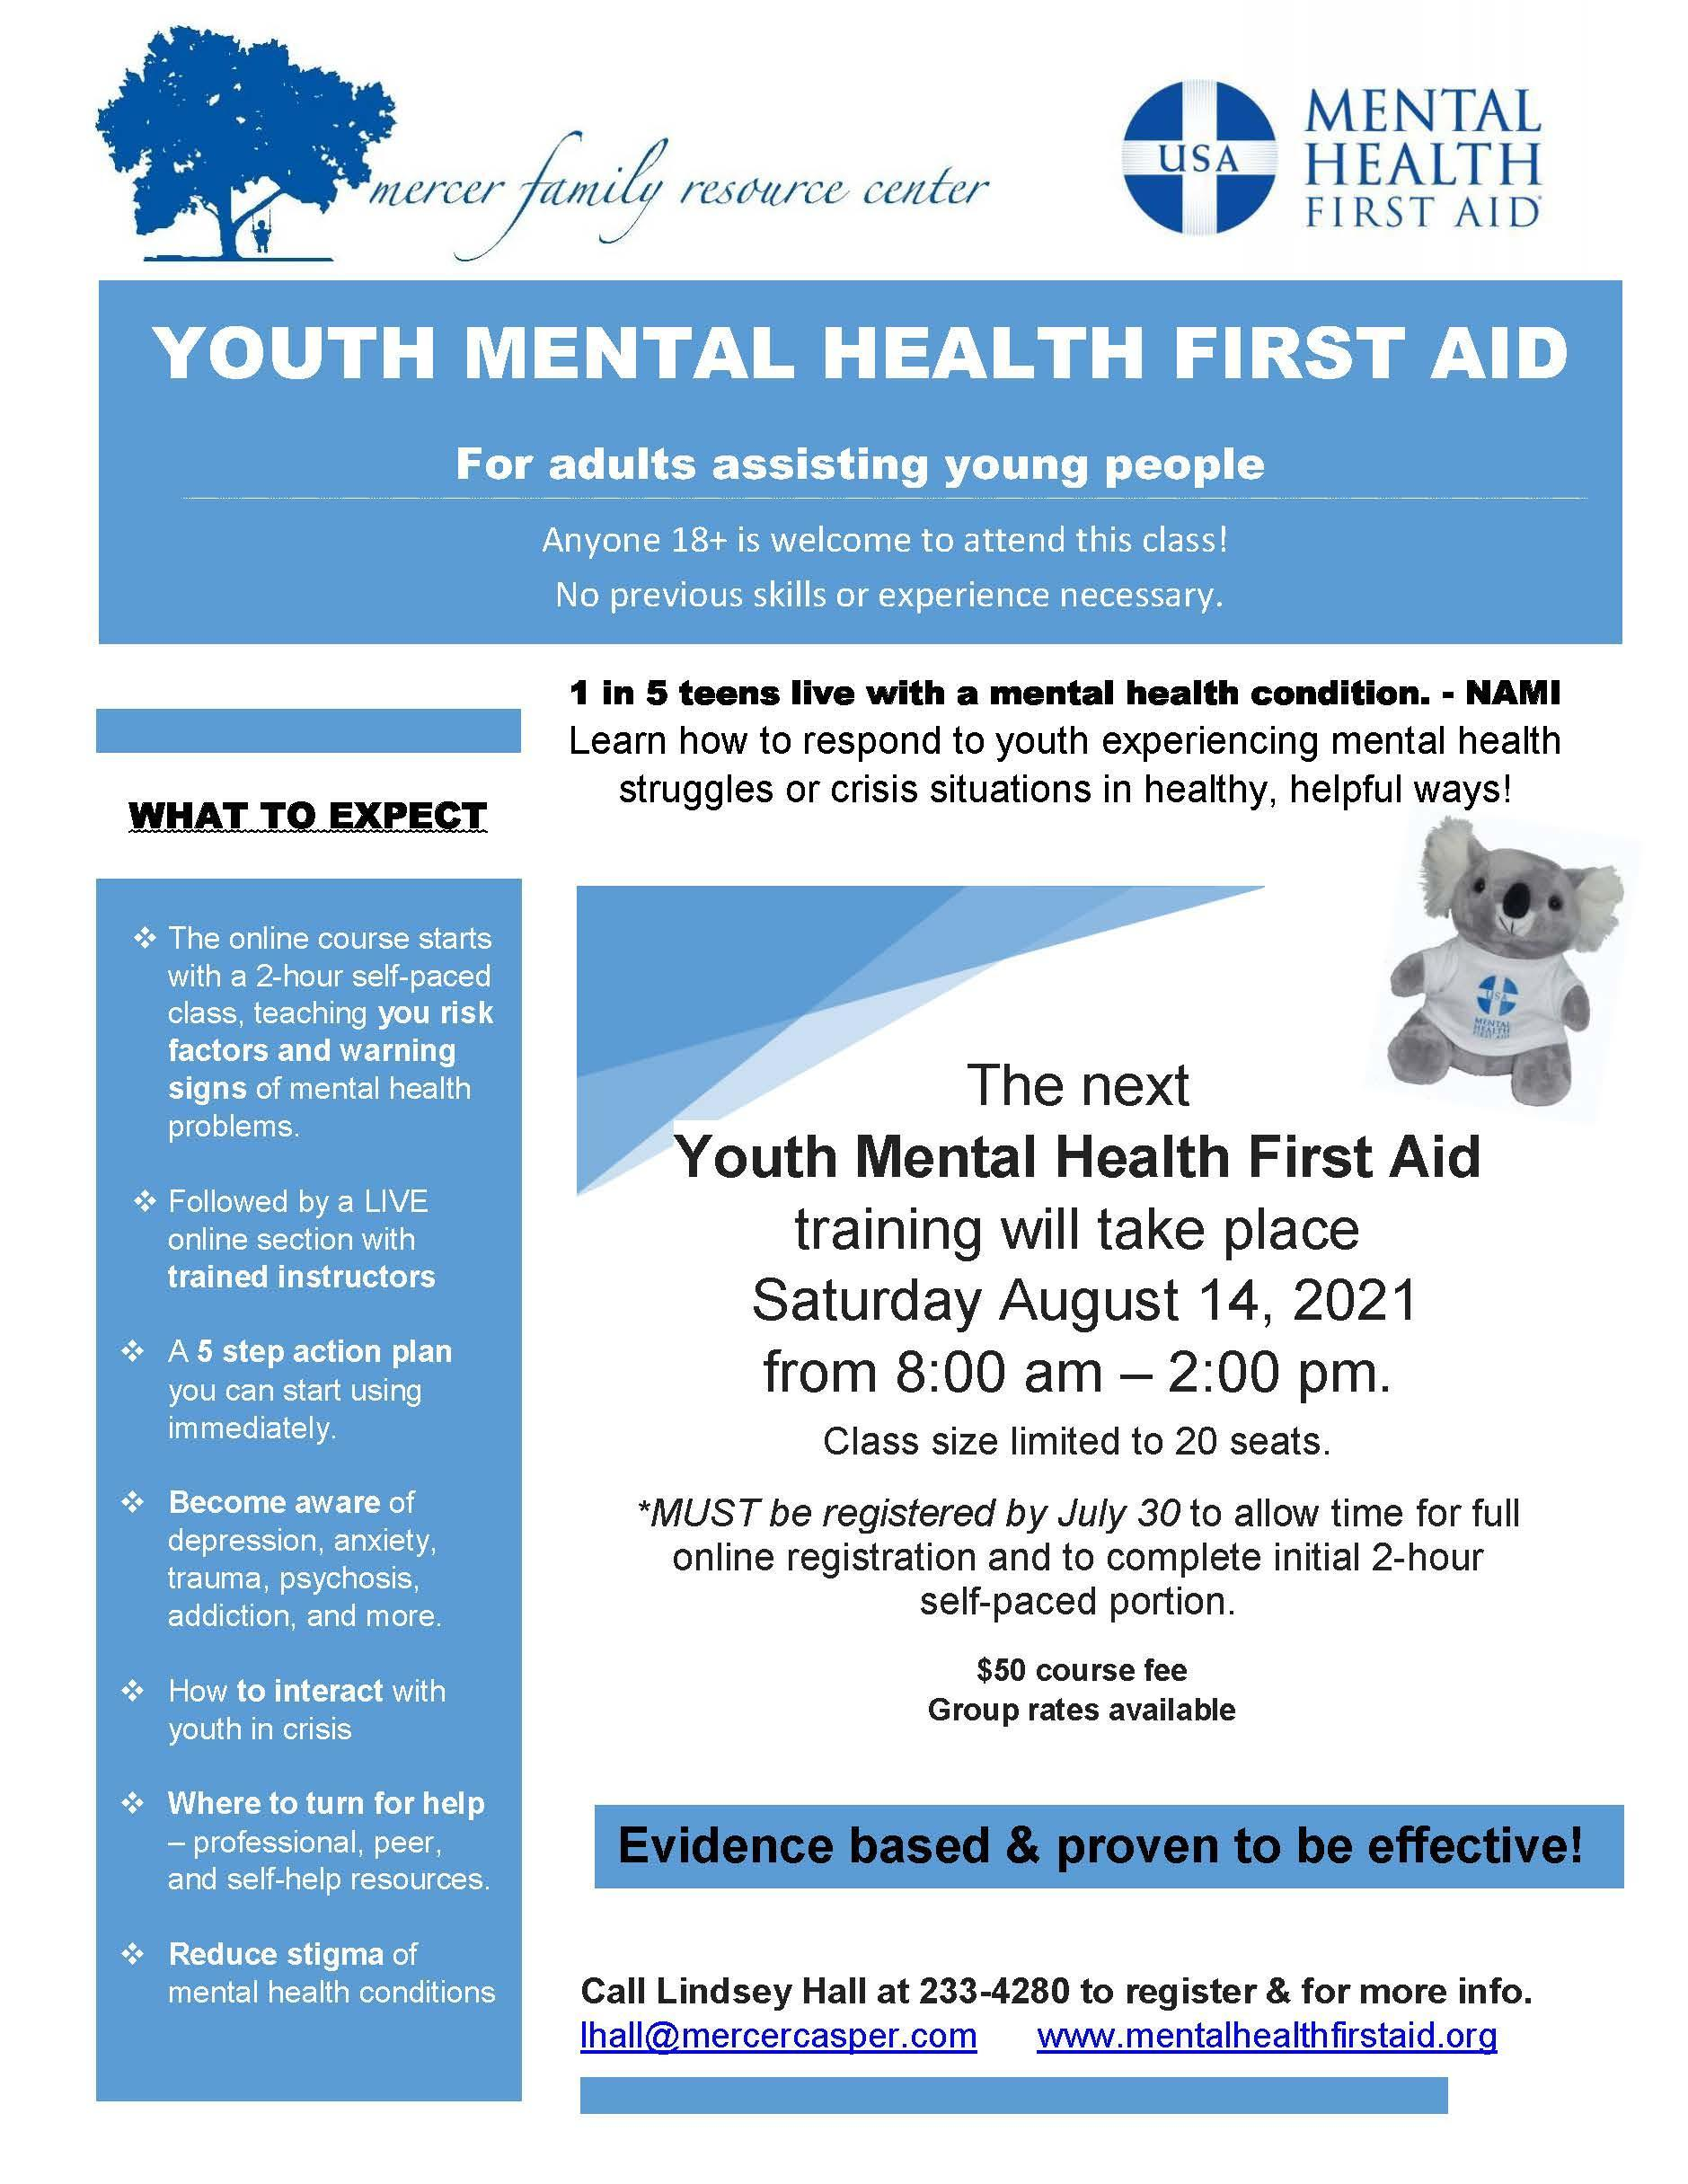 Youth Mental Health First Aid Training Flyer